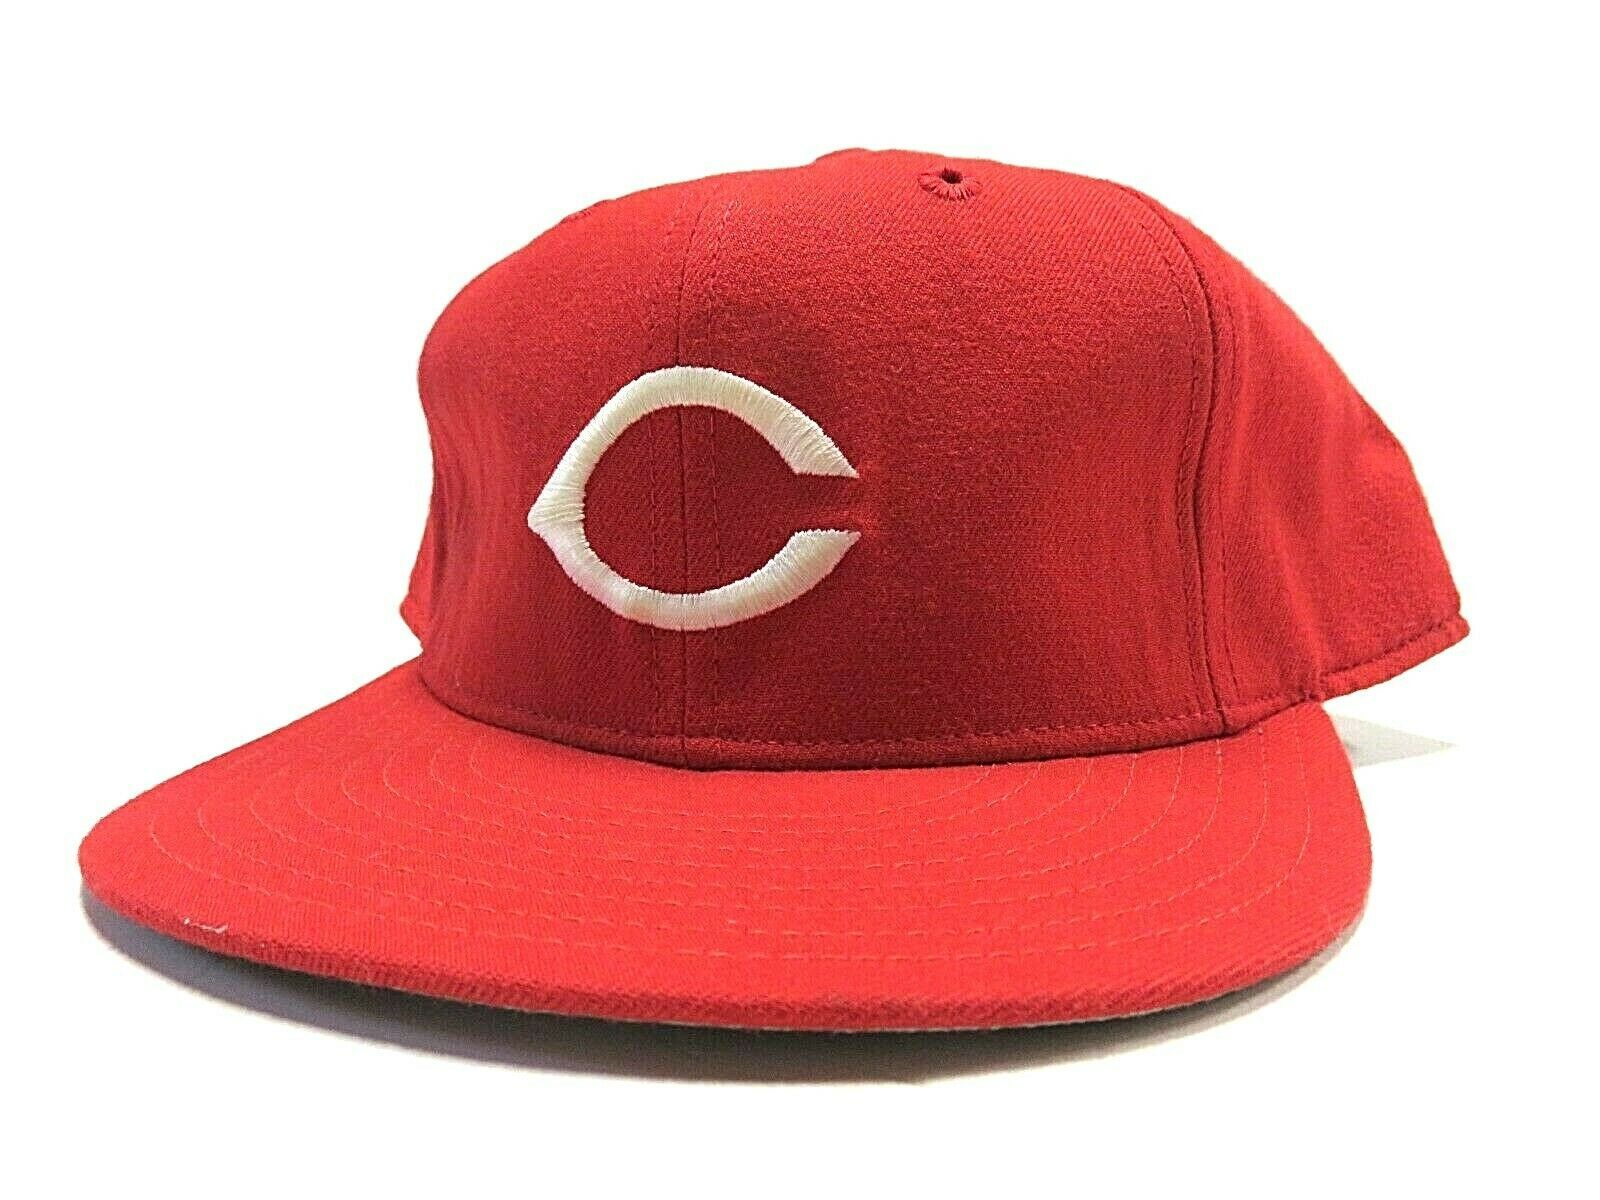 VTG New Era Cincinnati Reds MLB Baseball Fitted Hat Adult Size 7 3/4 Made in USA